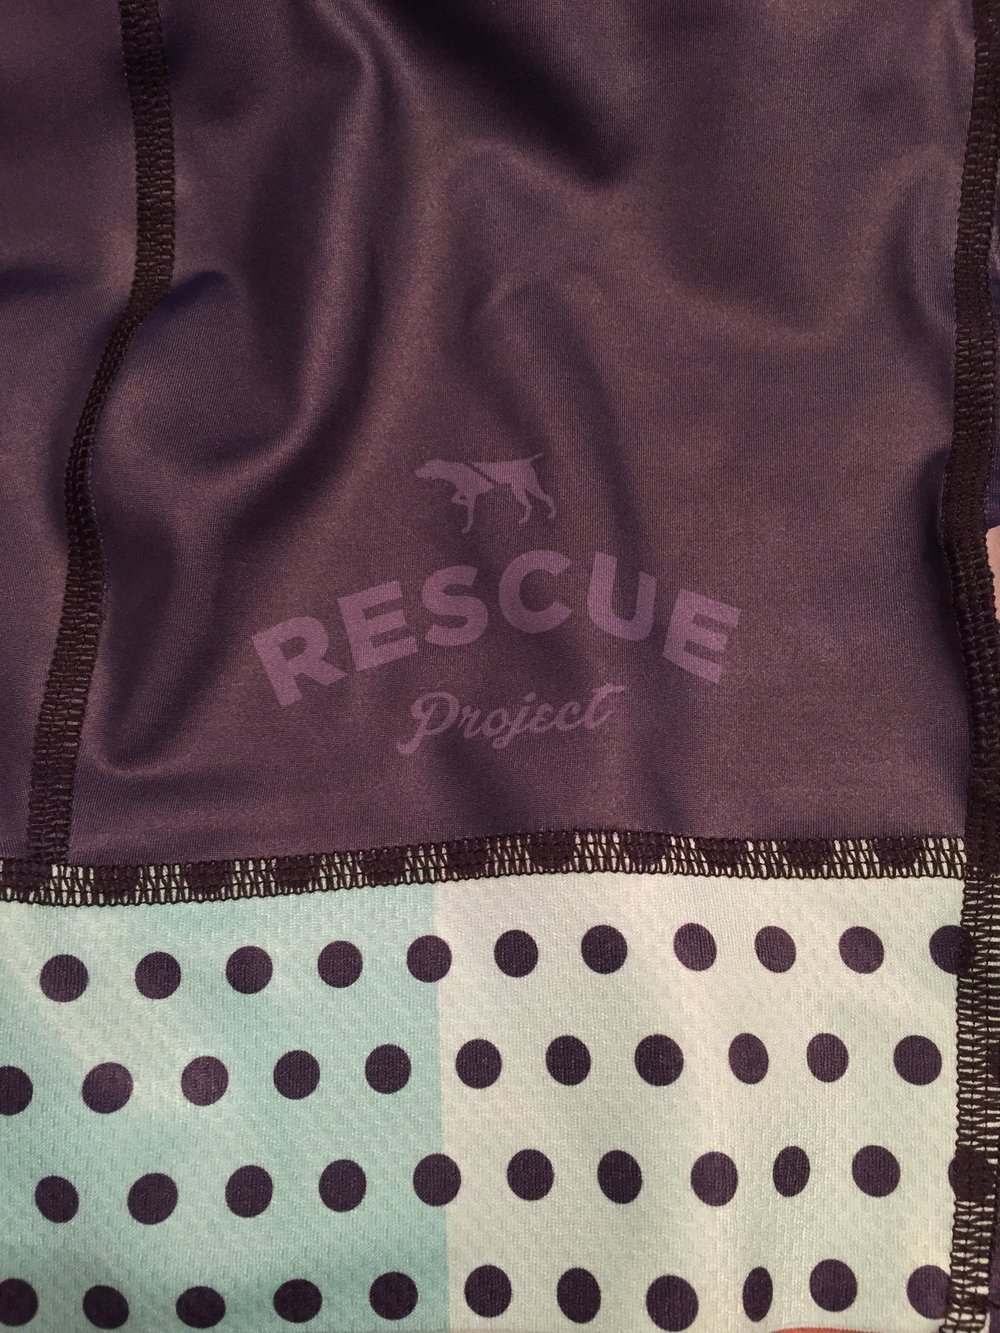 The Rescue Project logo on the left leg and detail of the celeste polka dot panel. The flip side of the left leg features a copper panel also with polka dots.